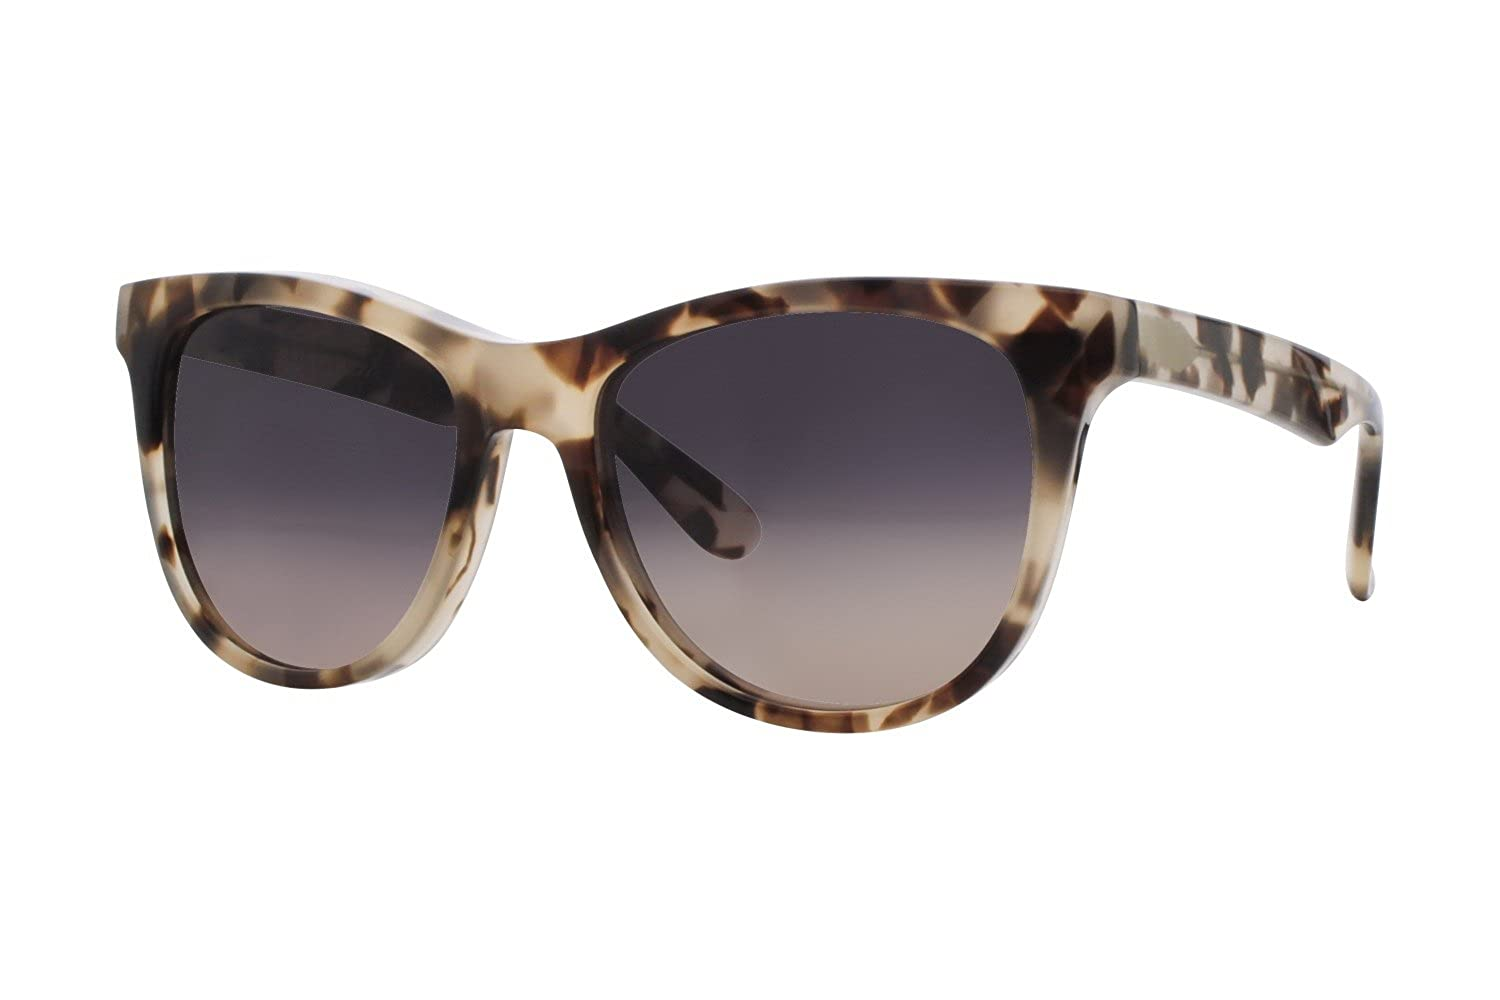 6162a39421191 Amazon.com  WILDFOX Catfarer Cat Eye Sunglasses in Antique Leaves  Clothing